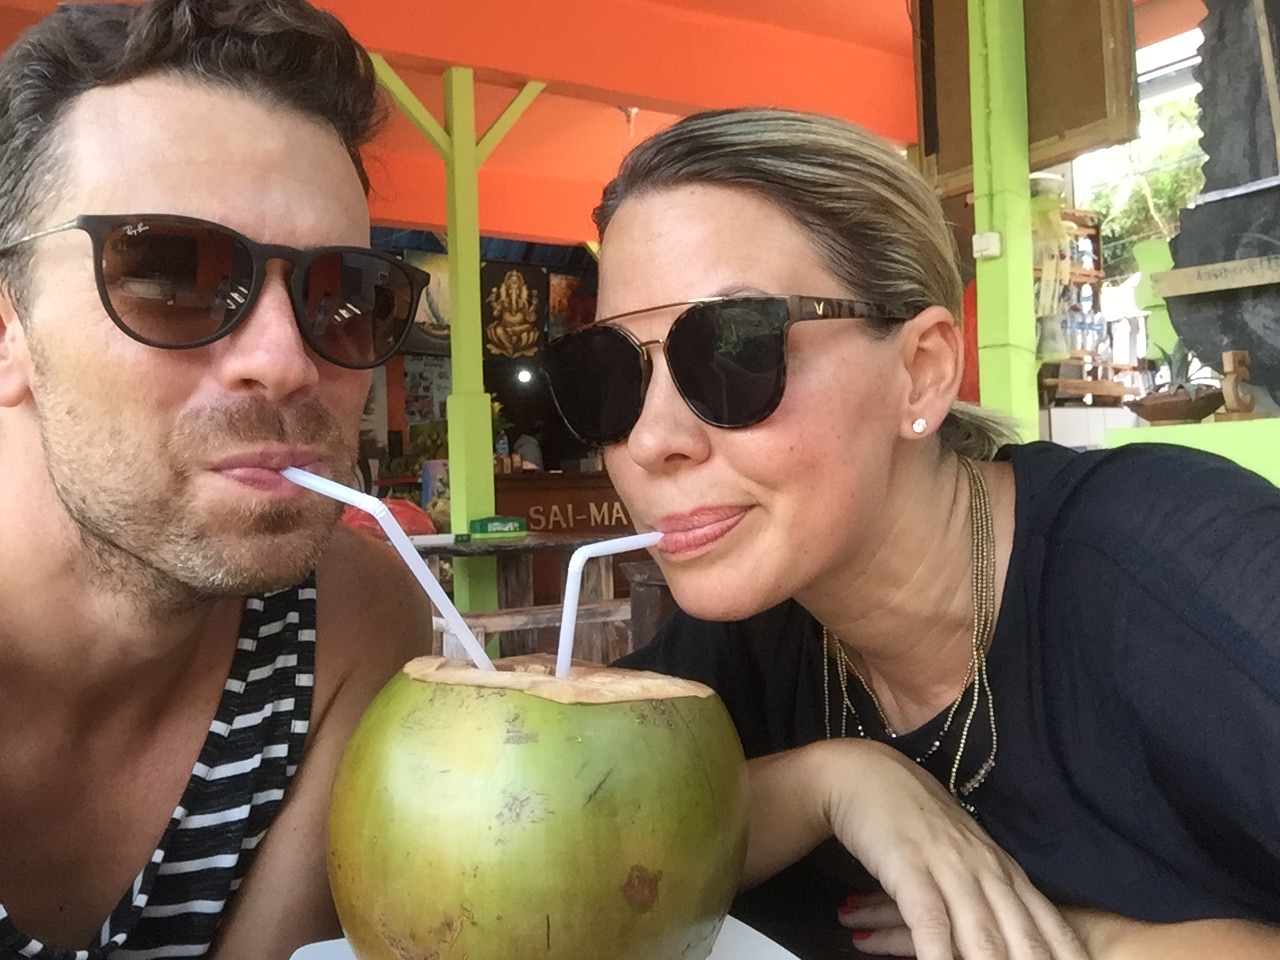 cooling off with a fresh coconut